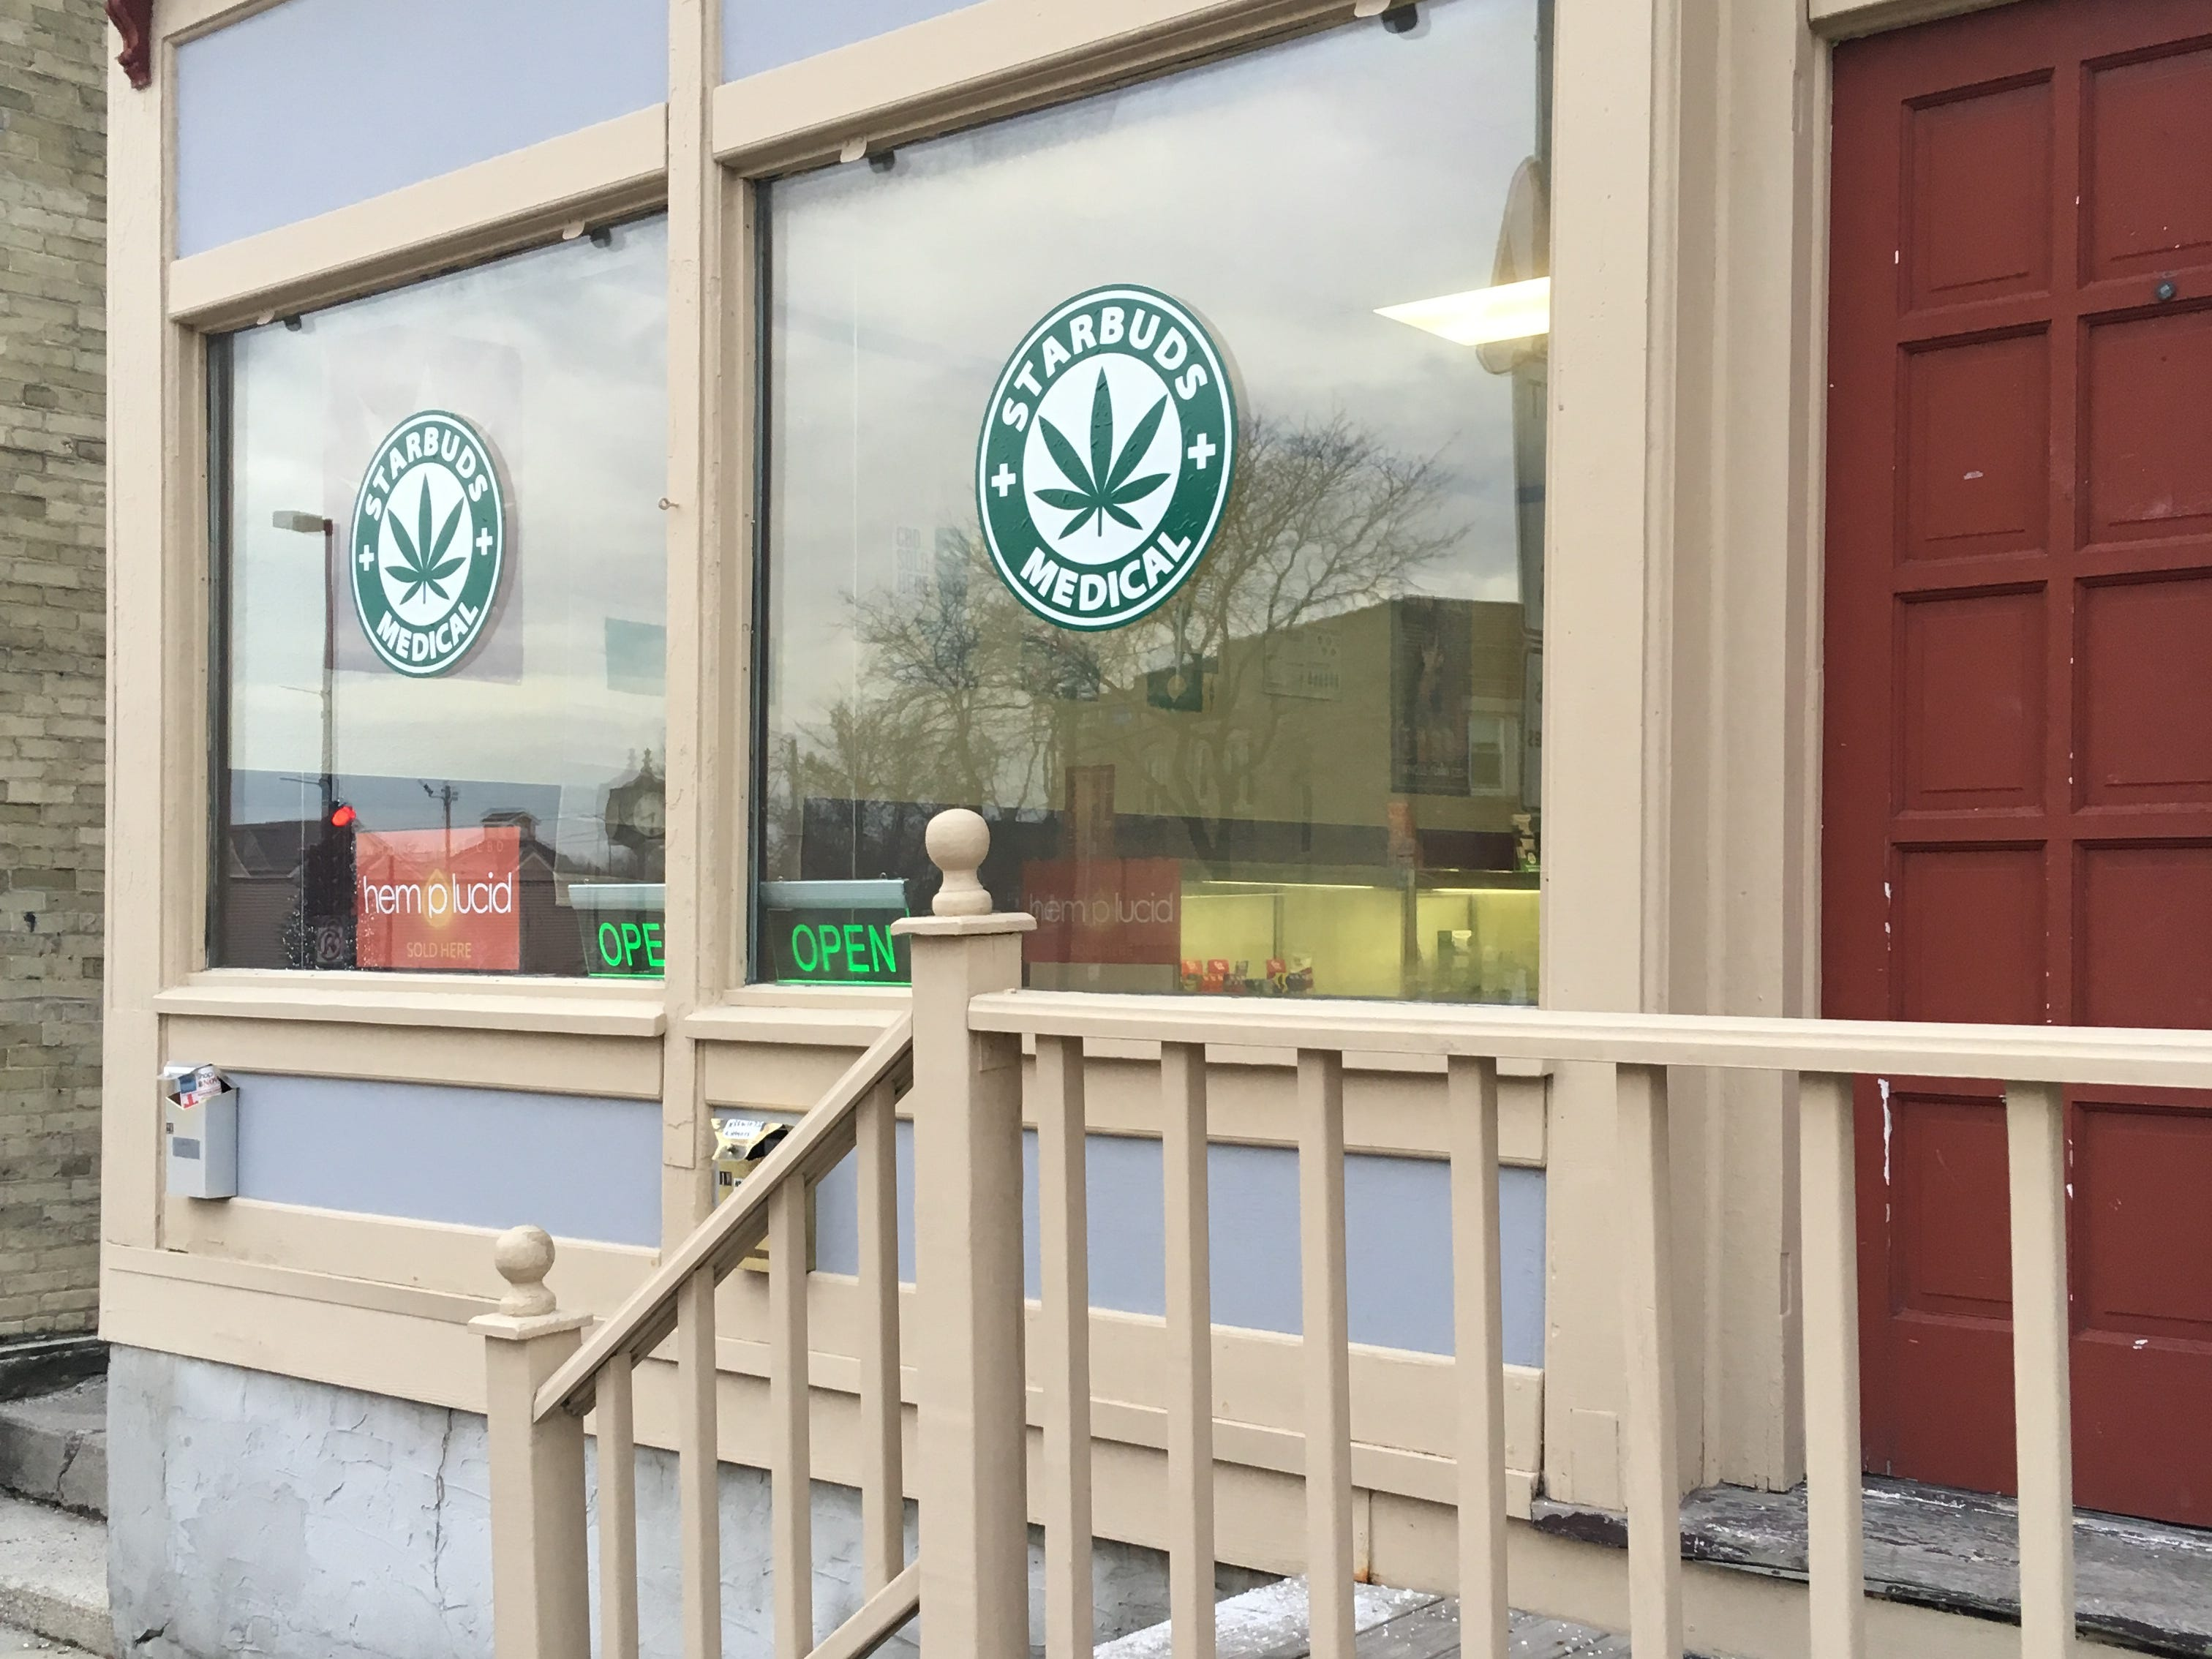 Starbuds opened in Menomonee Falls downtown shortly after industrial hemp was legalized nation-wide.